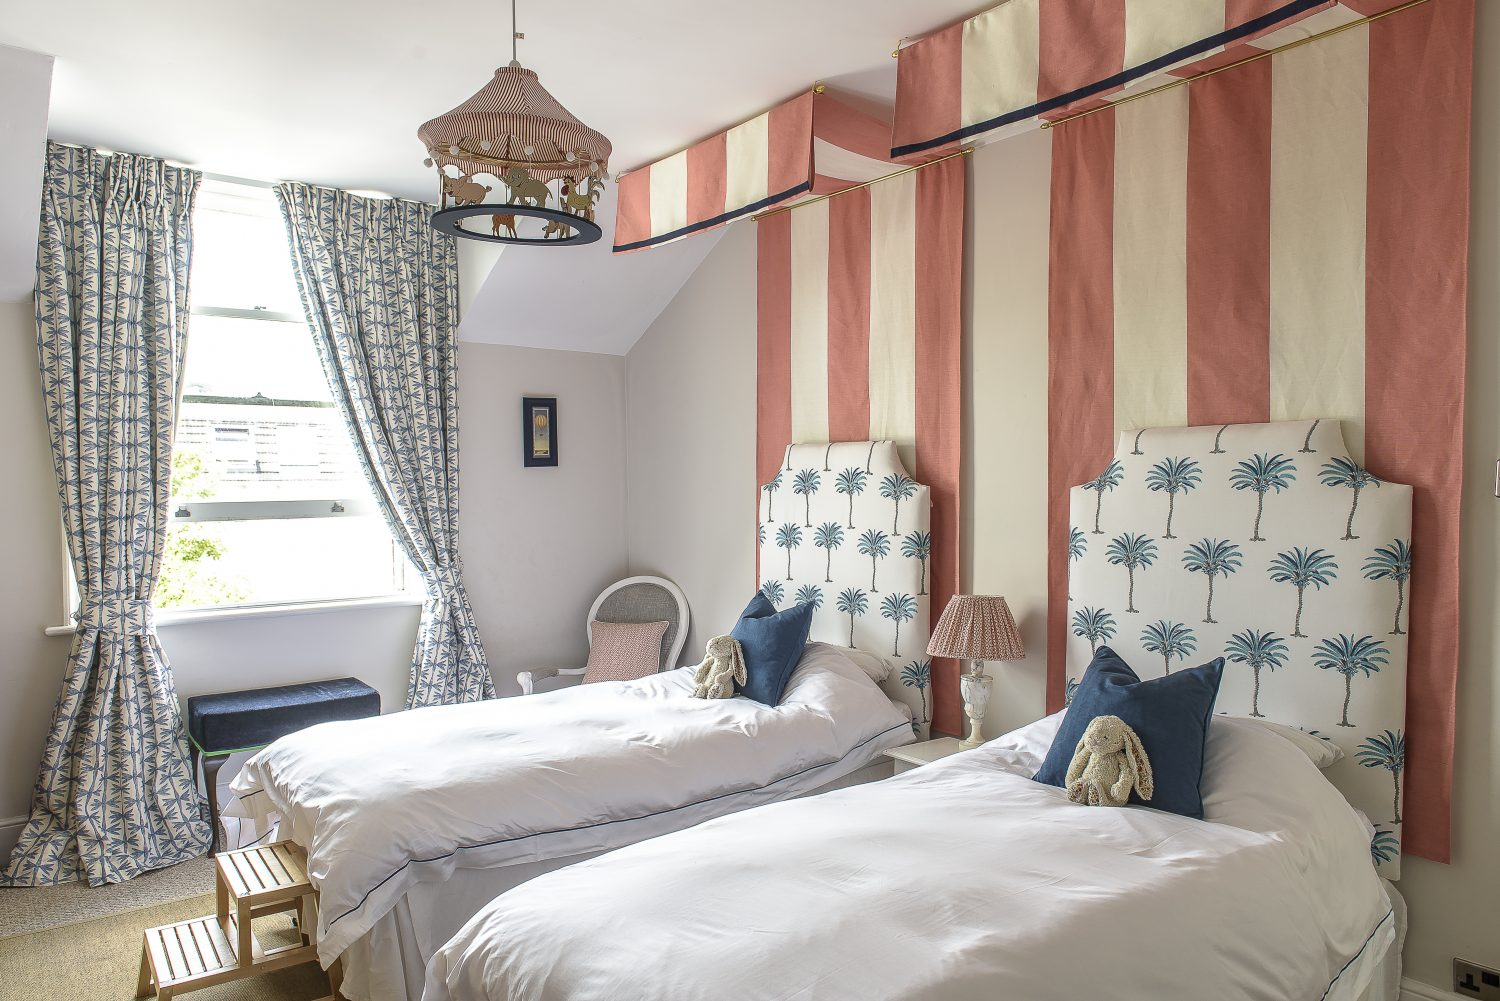 The couple's three-year-old daughter's gorgeous bedroom features twin beds with headboards made by Jules and upholstered in palm print fabric. Canopies reminiscent of circus stripes give a playful feel. The animal pendant light above the beds was found by Jules in a charity shop and customised with pom poms